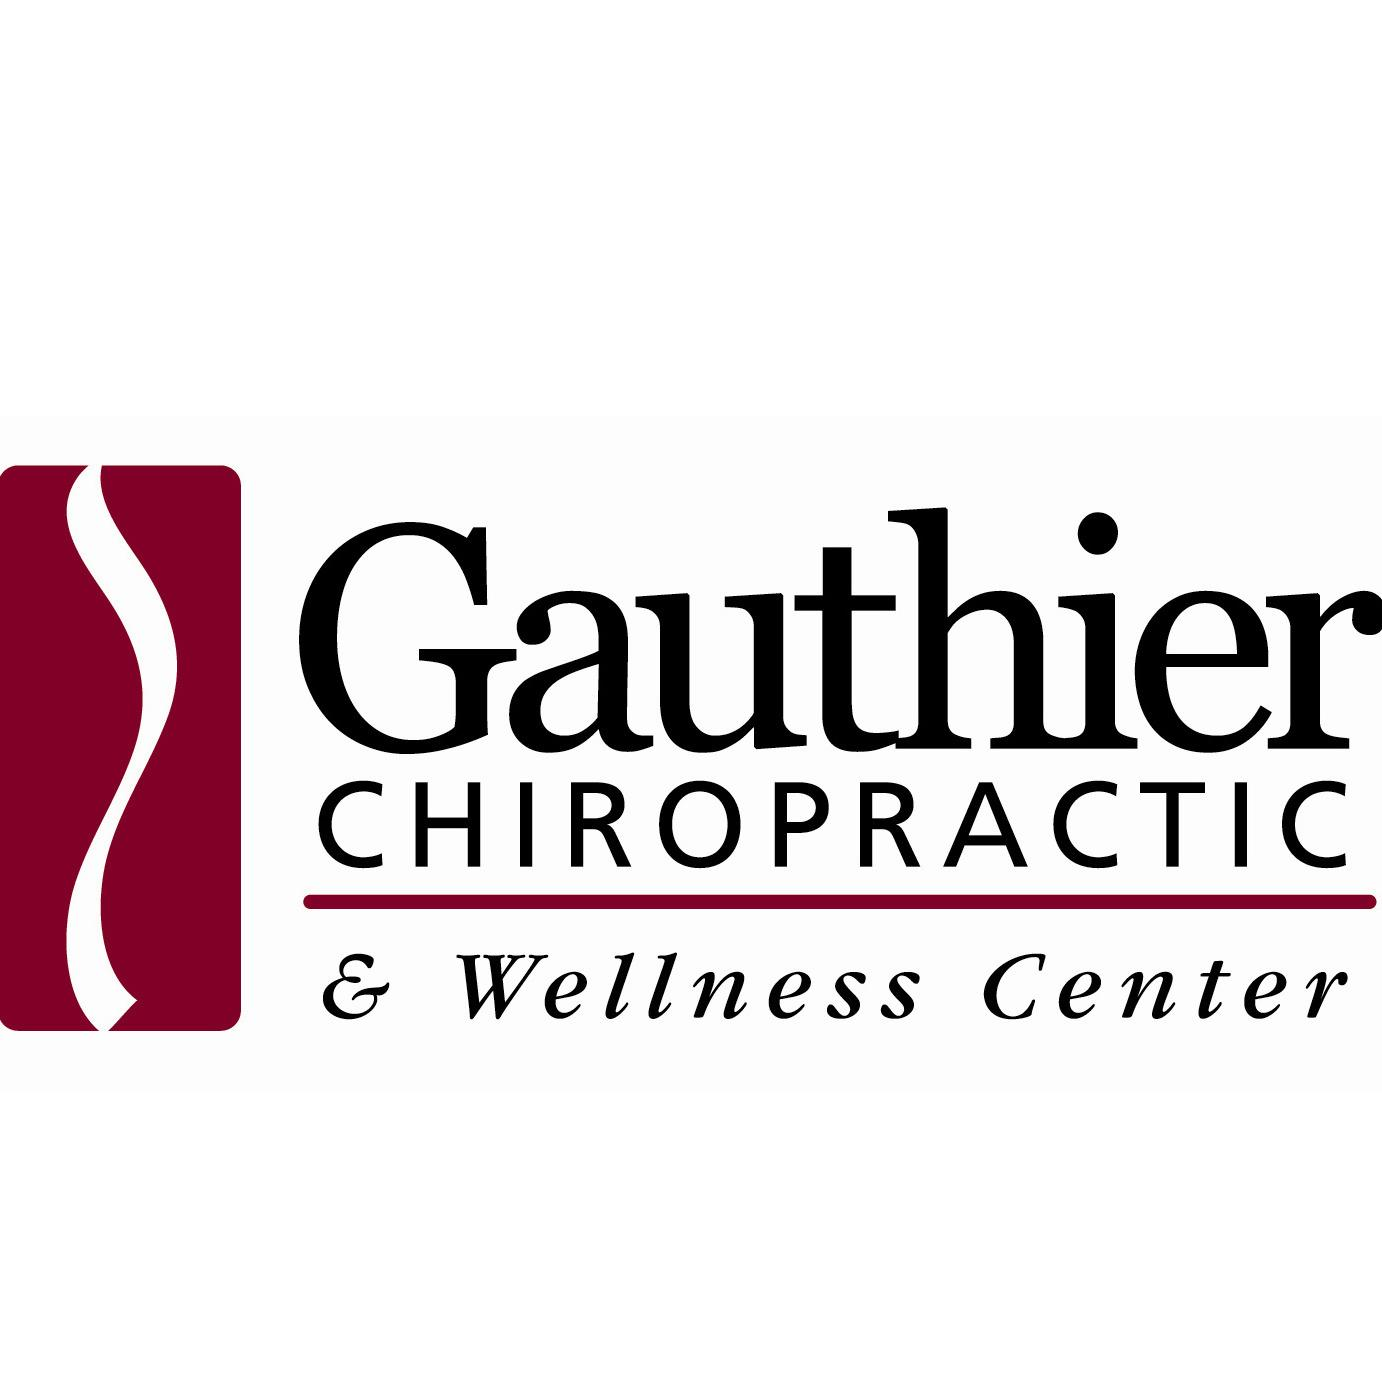 Gauthier Chiropractic & Wellness Center